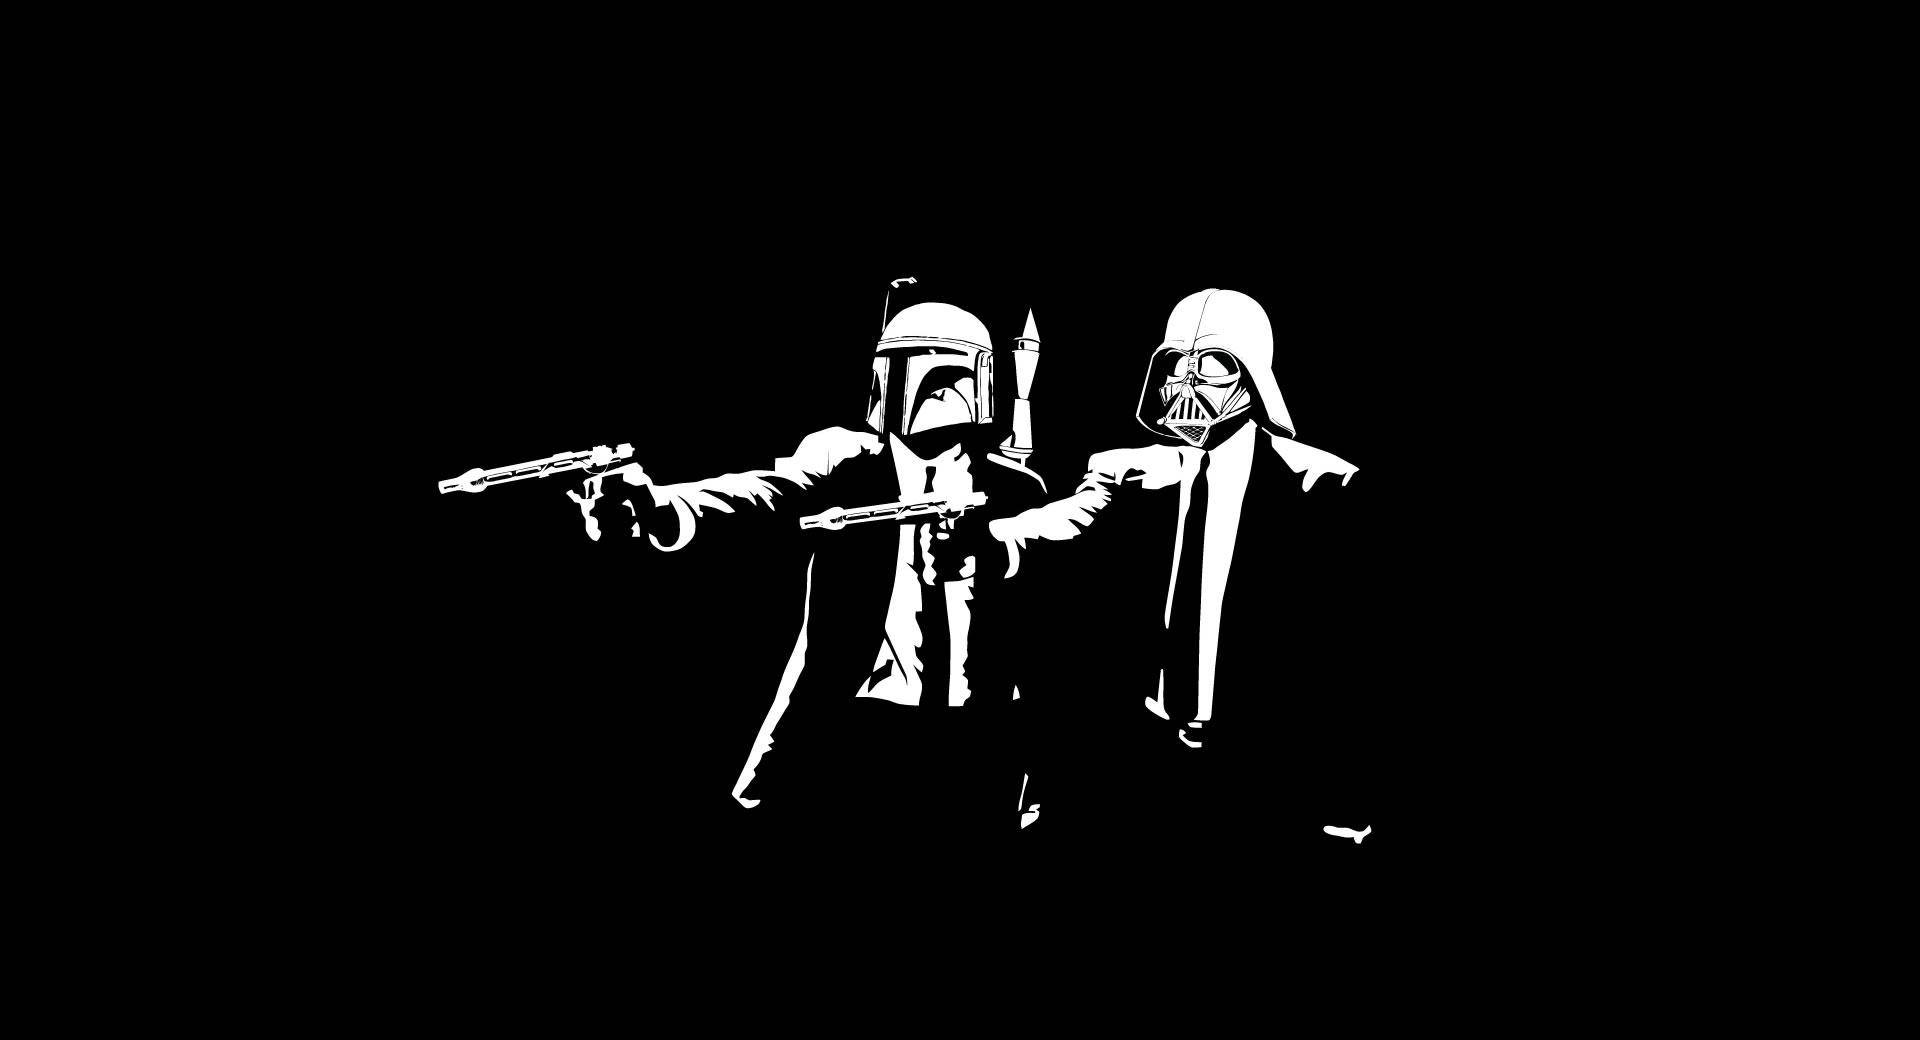 Star Wars Pulp Fiction wallpapers HD quality